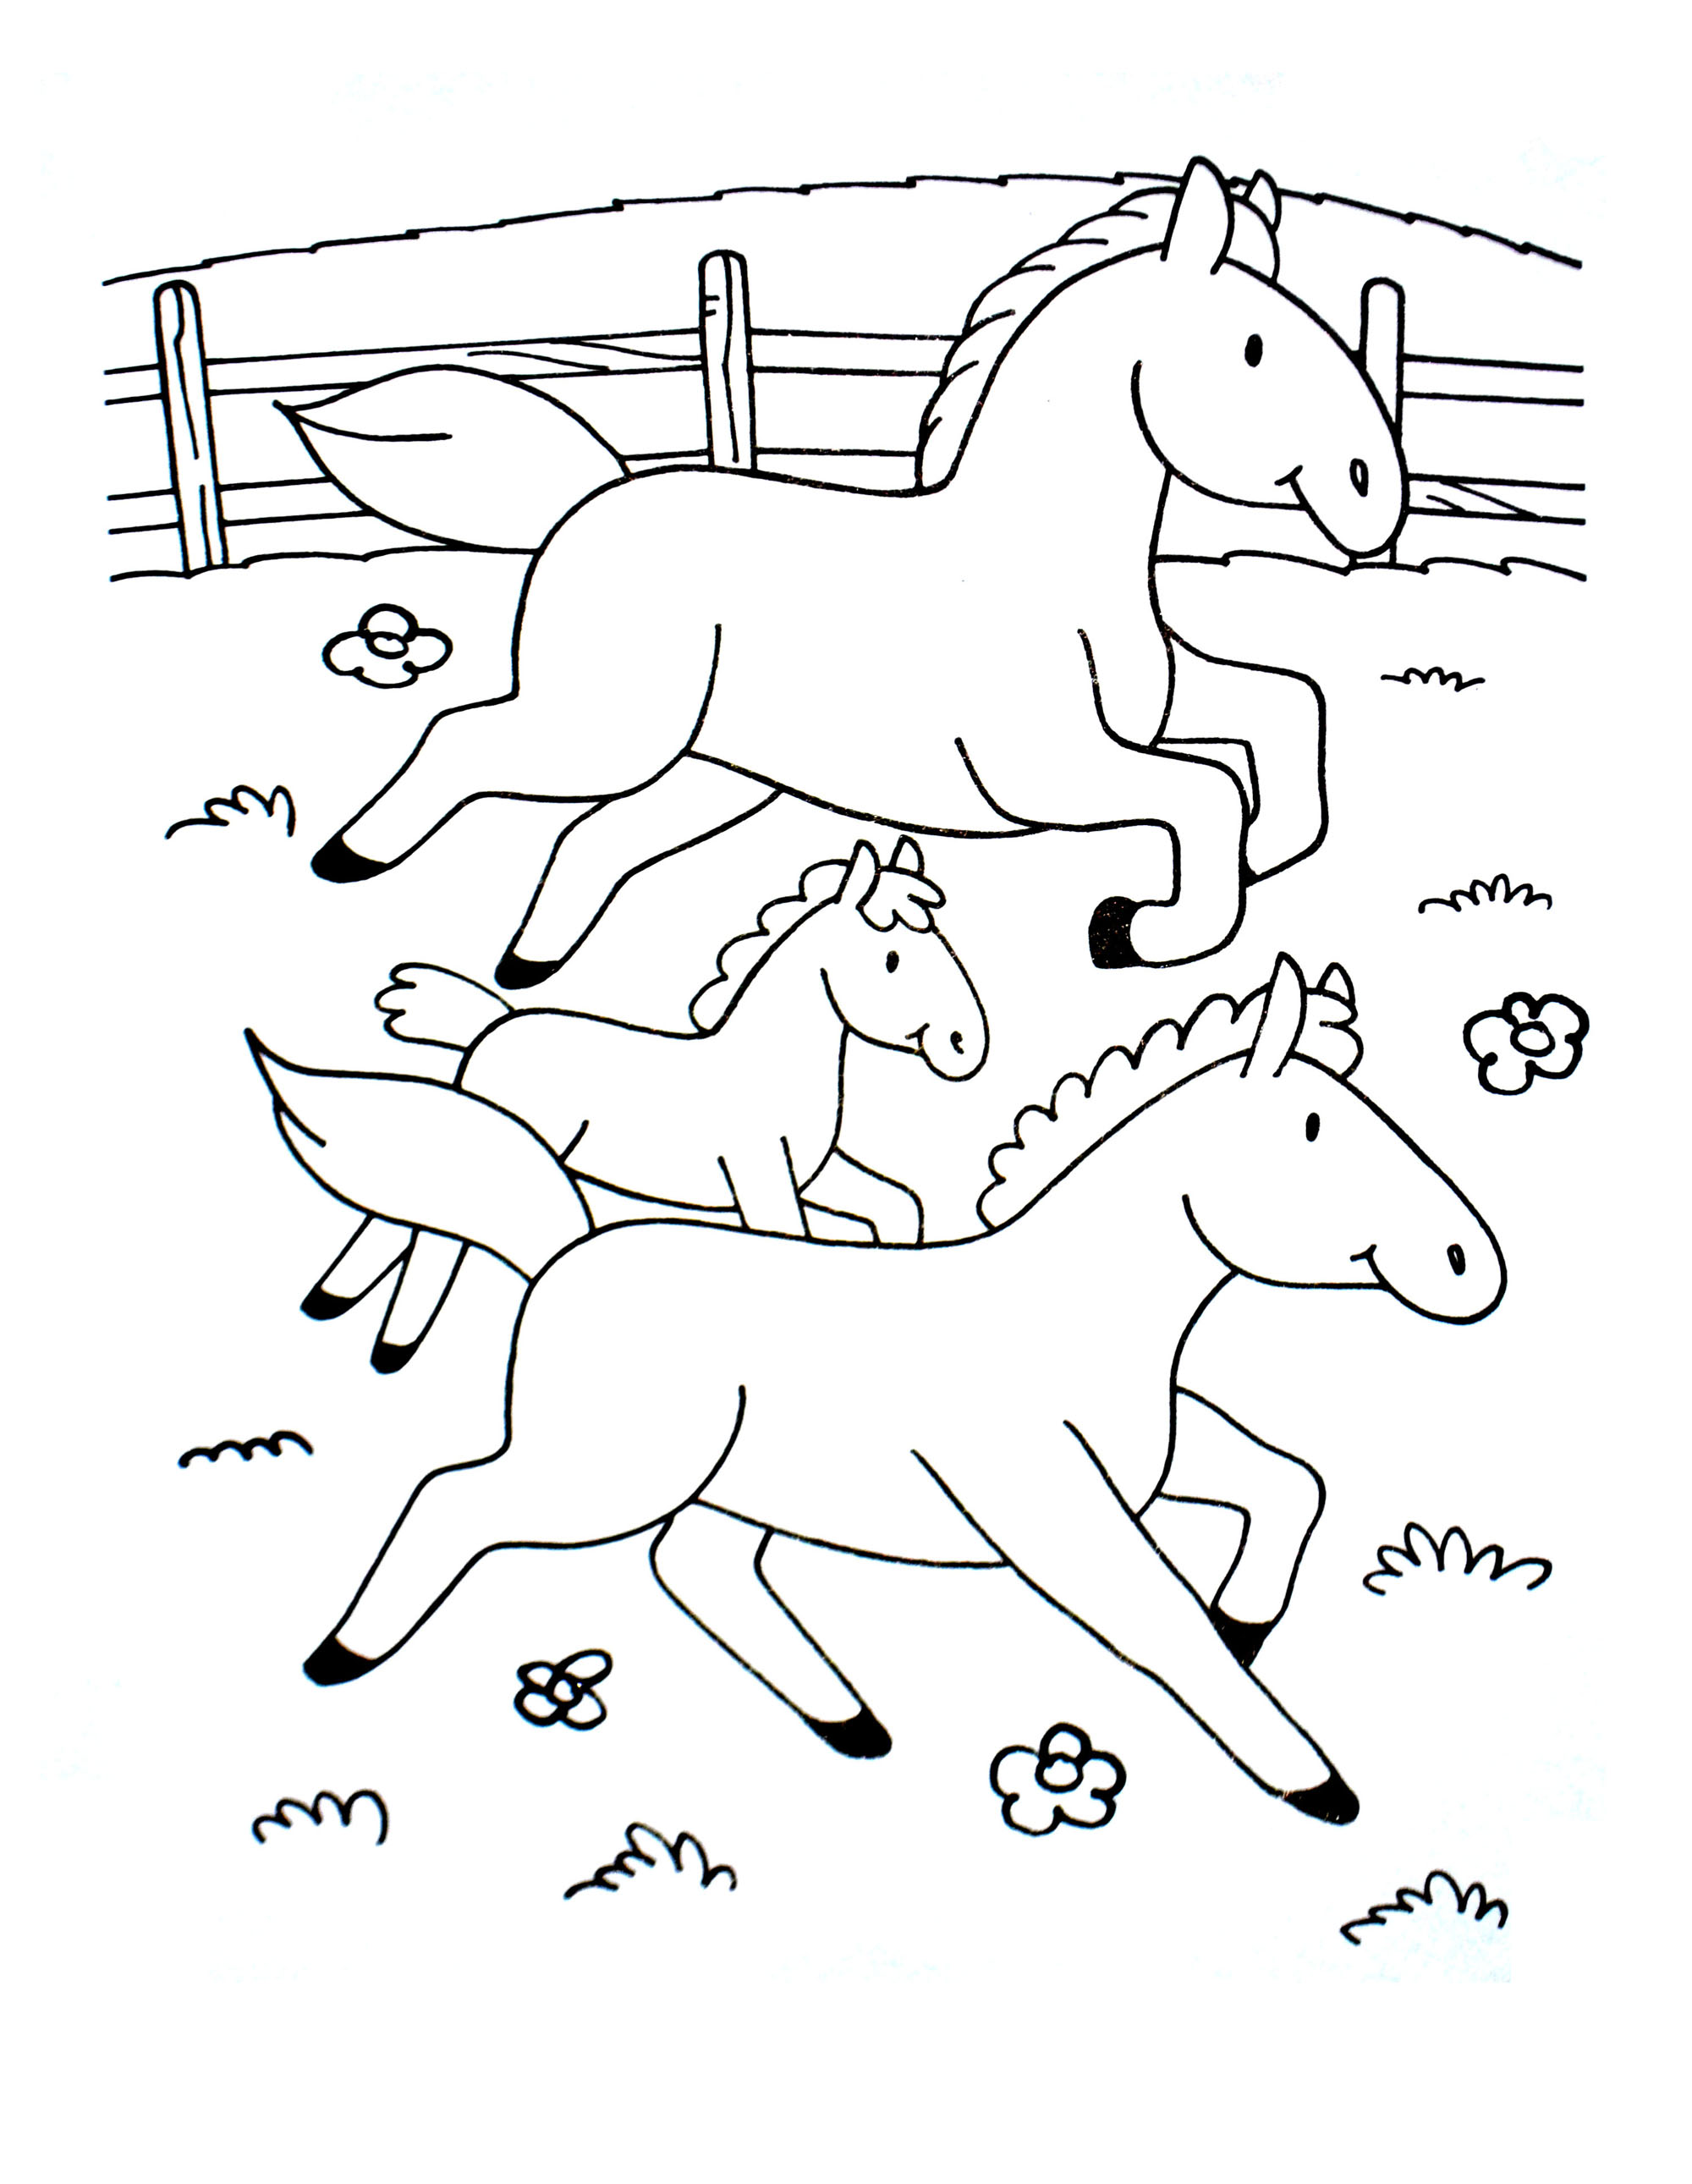 Free & Simple Horse coloring page to download